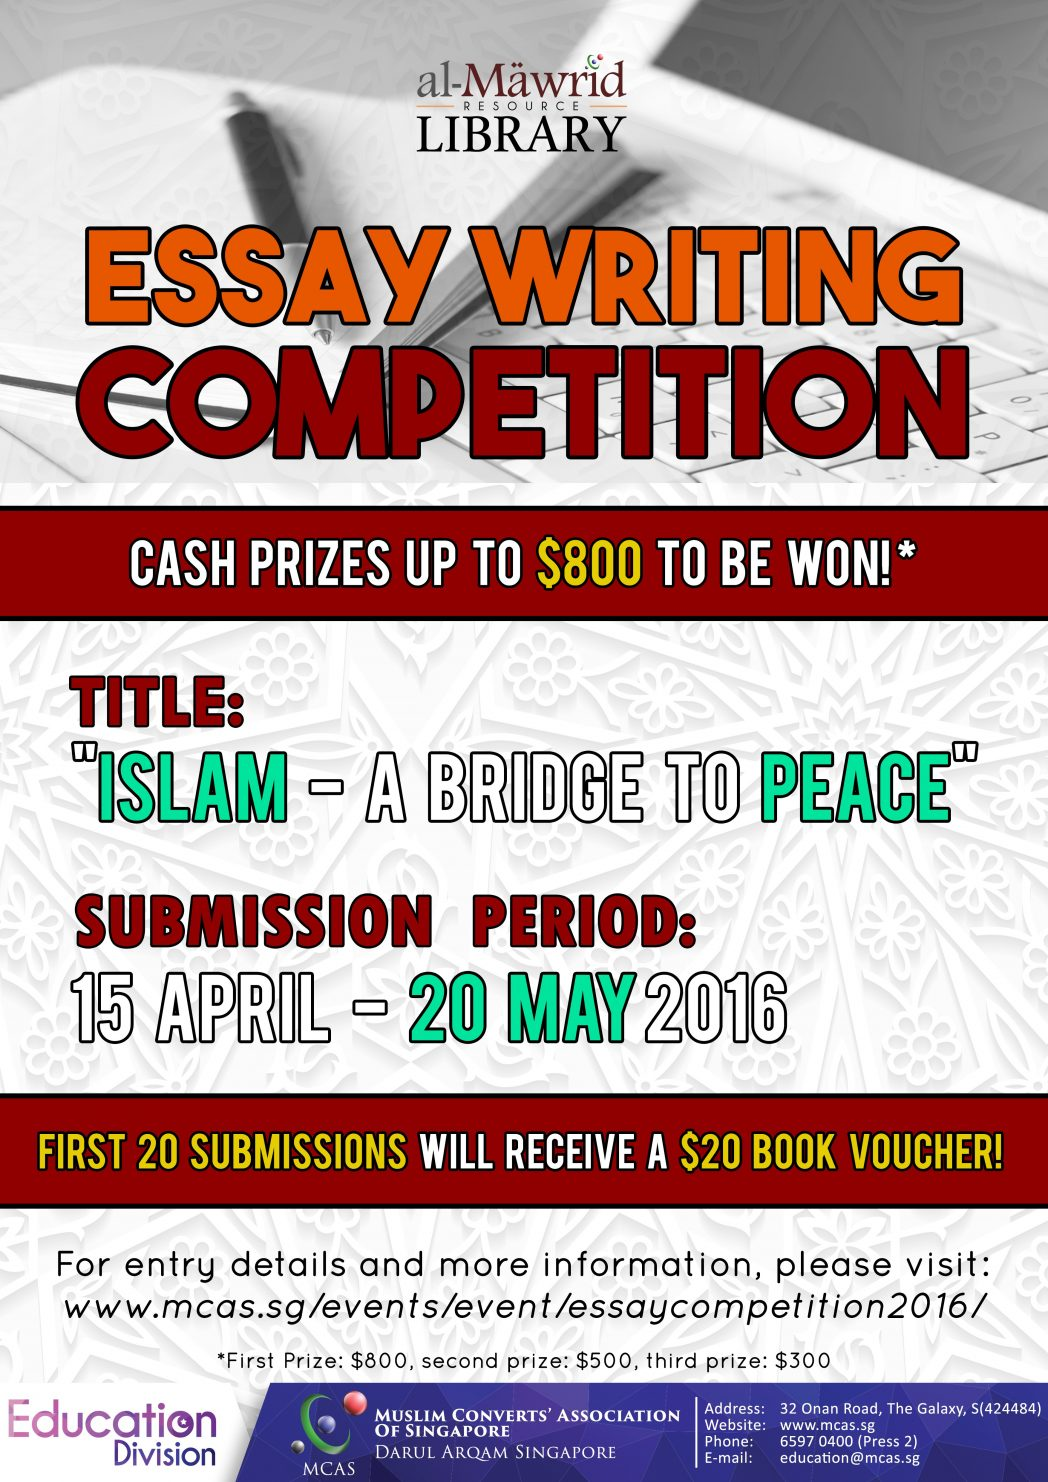 024 Buysay Com Ua Close Up Front Rank Firm In Australia To Writing Contest Criteria Version 2 Competition New Philippines Rubrics Mechanics Guidelines Tips For Nutrition 1048x1482 Incredible Essay College Students By Essayhub Sample Full